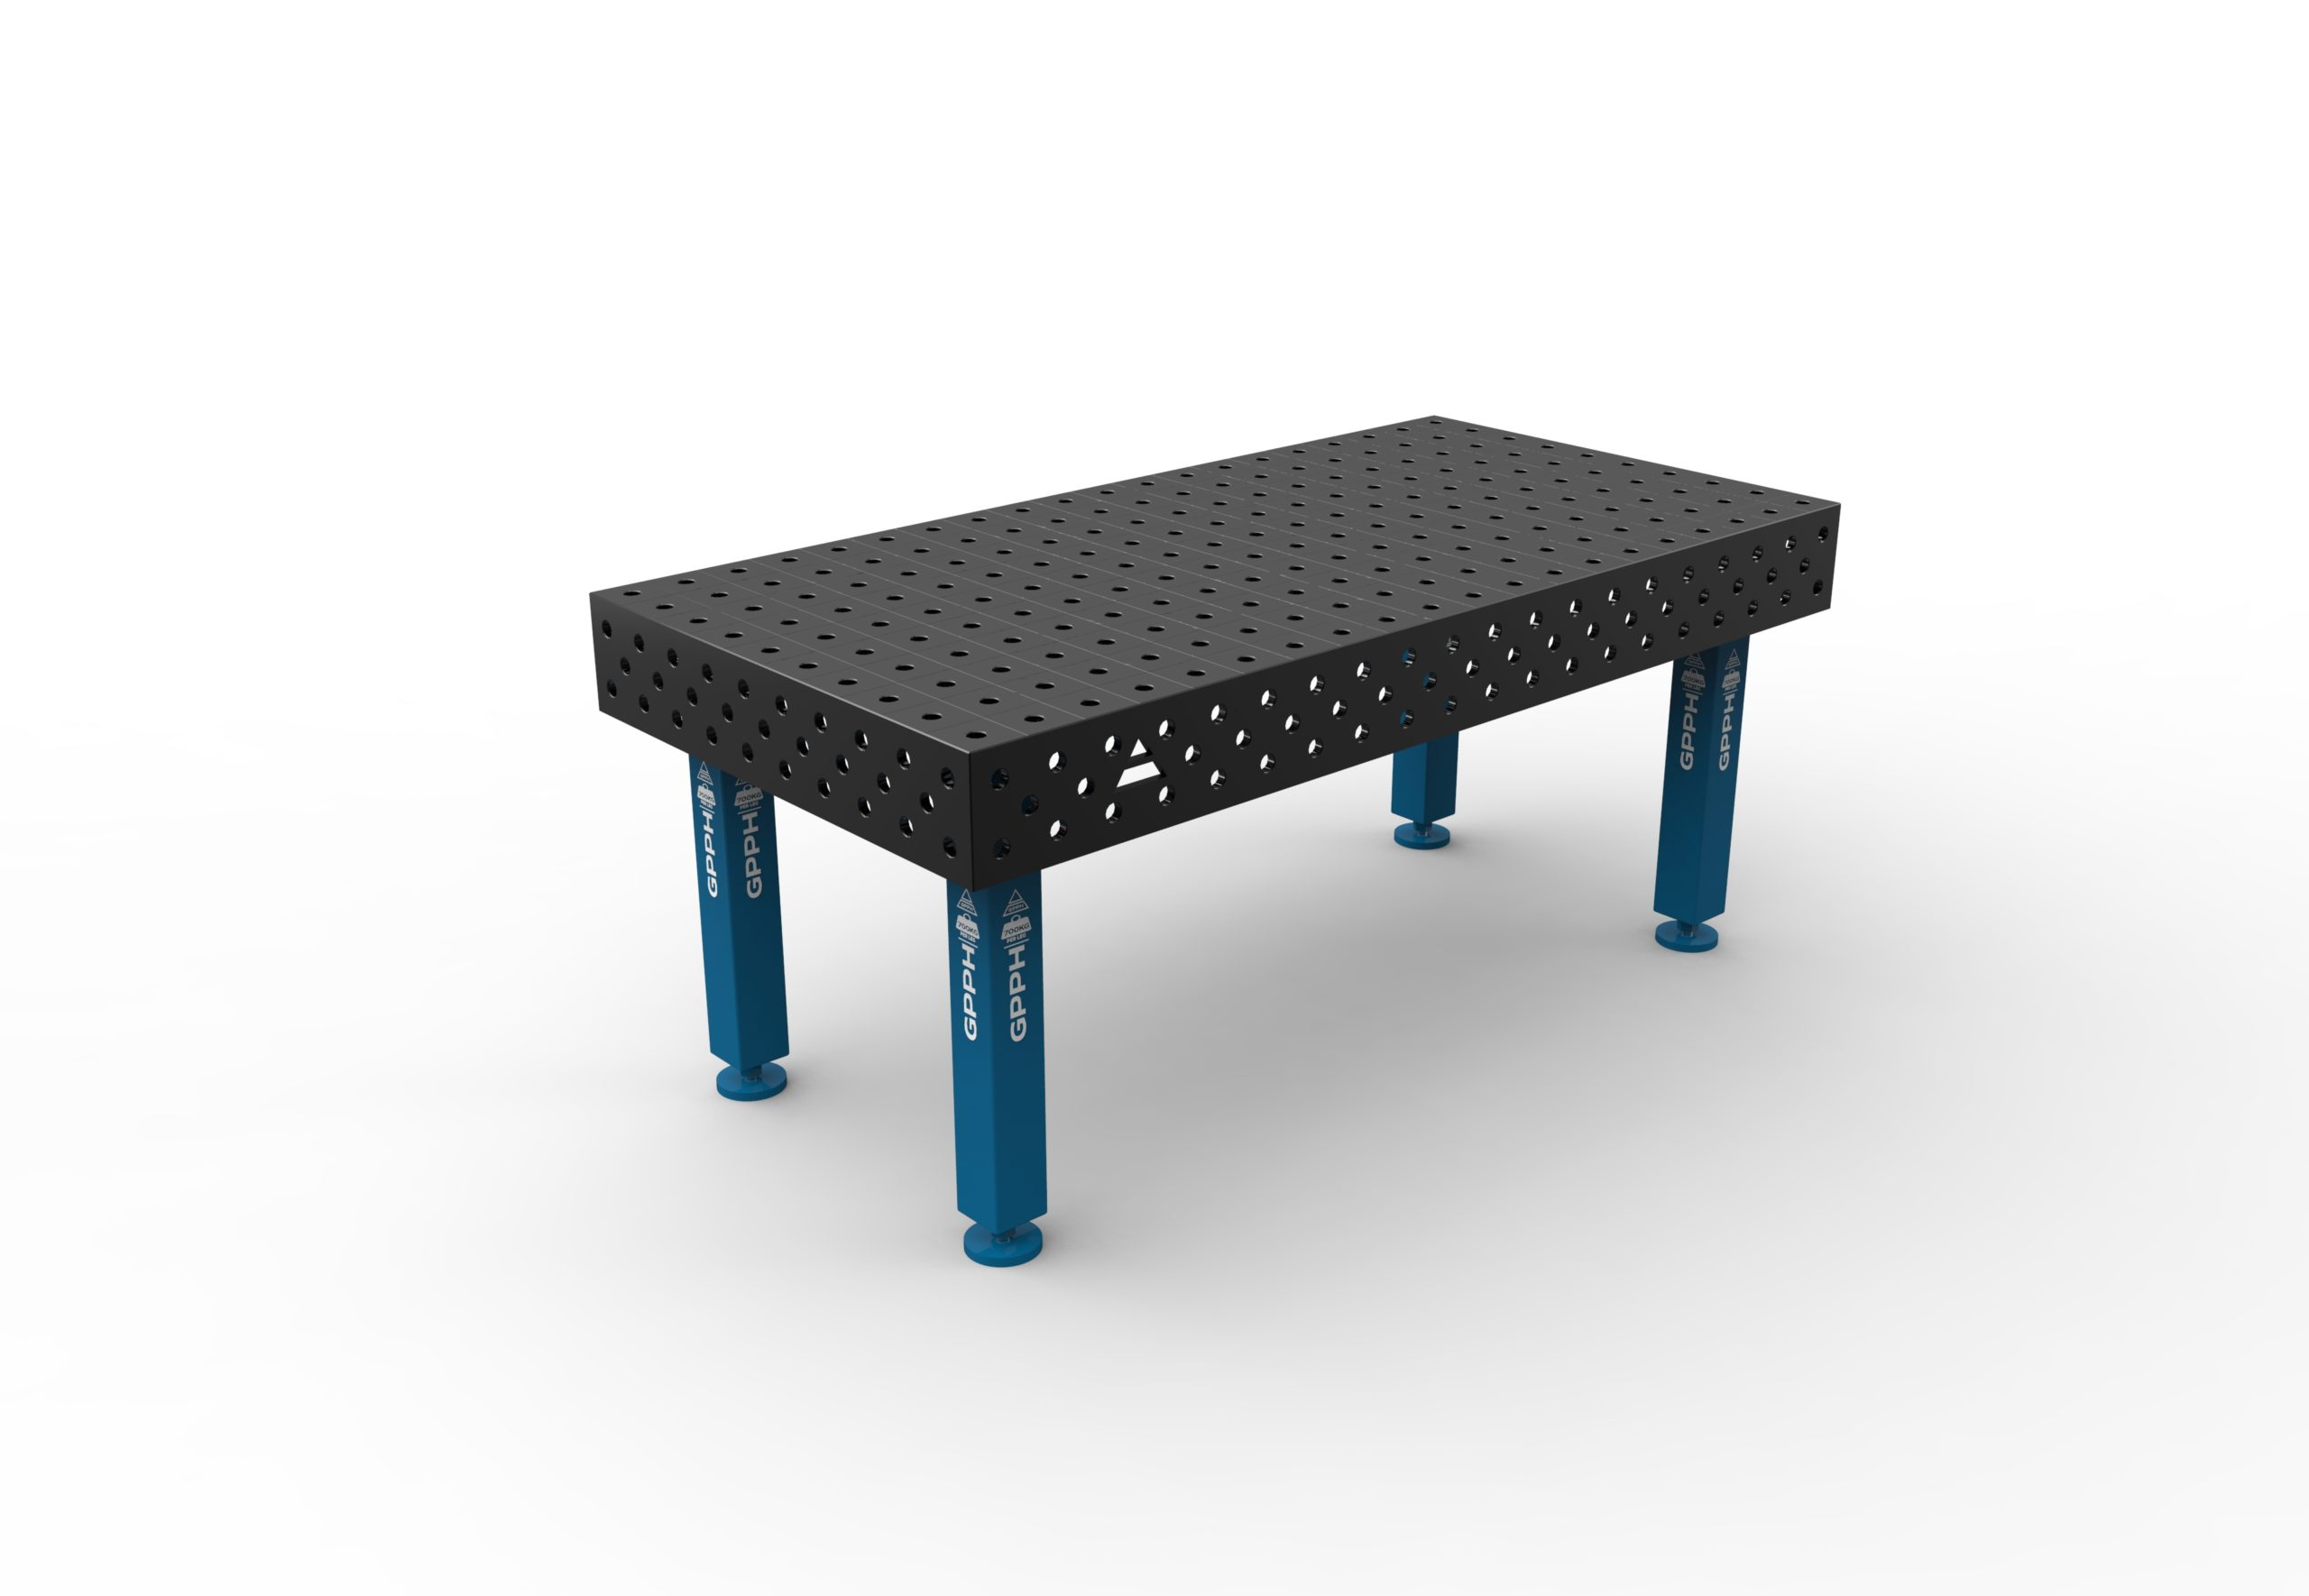 Table de soudage PRO 2000 x 1000 mm de GPPH